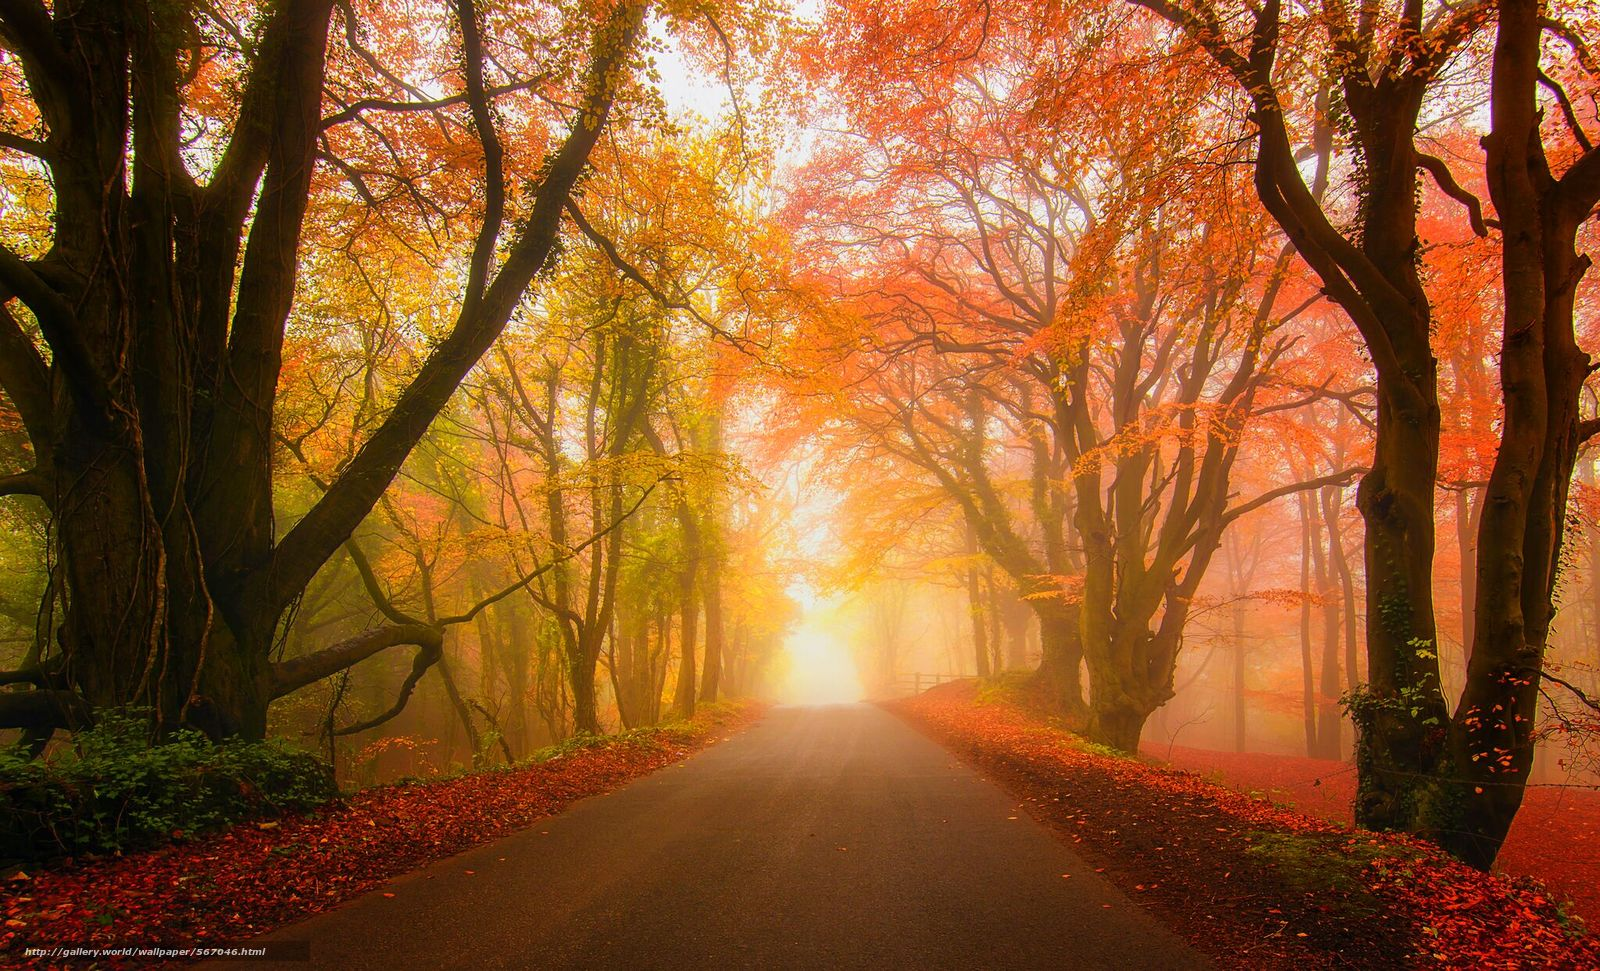 Download wallpaper forest,  fog,  park,  autumn free desktop wallpaper in the resolution 2048x1243 — picture №567046